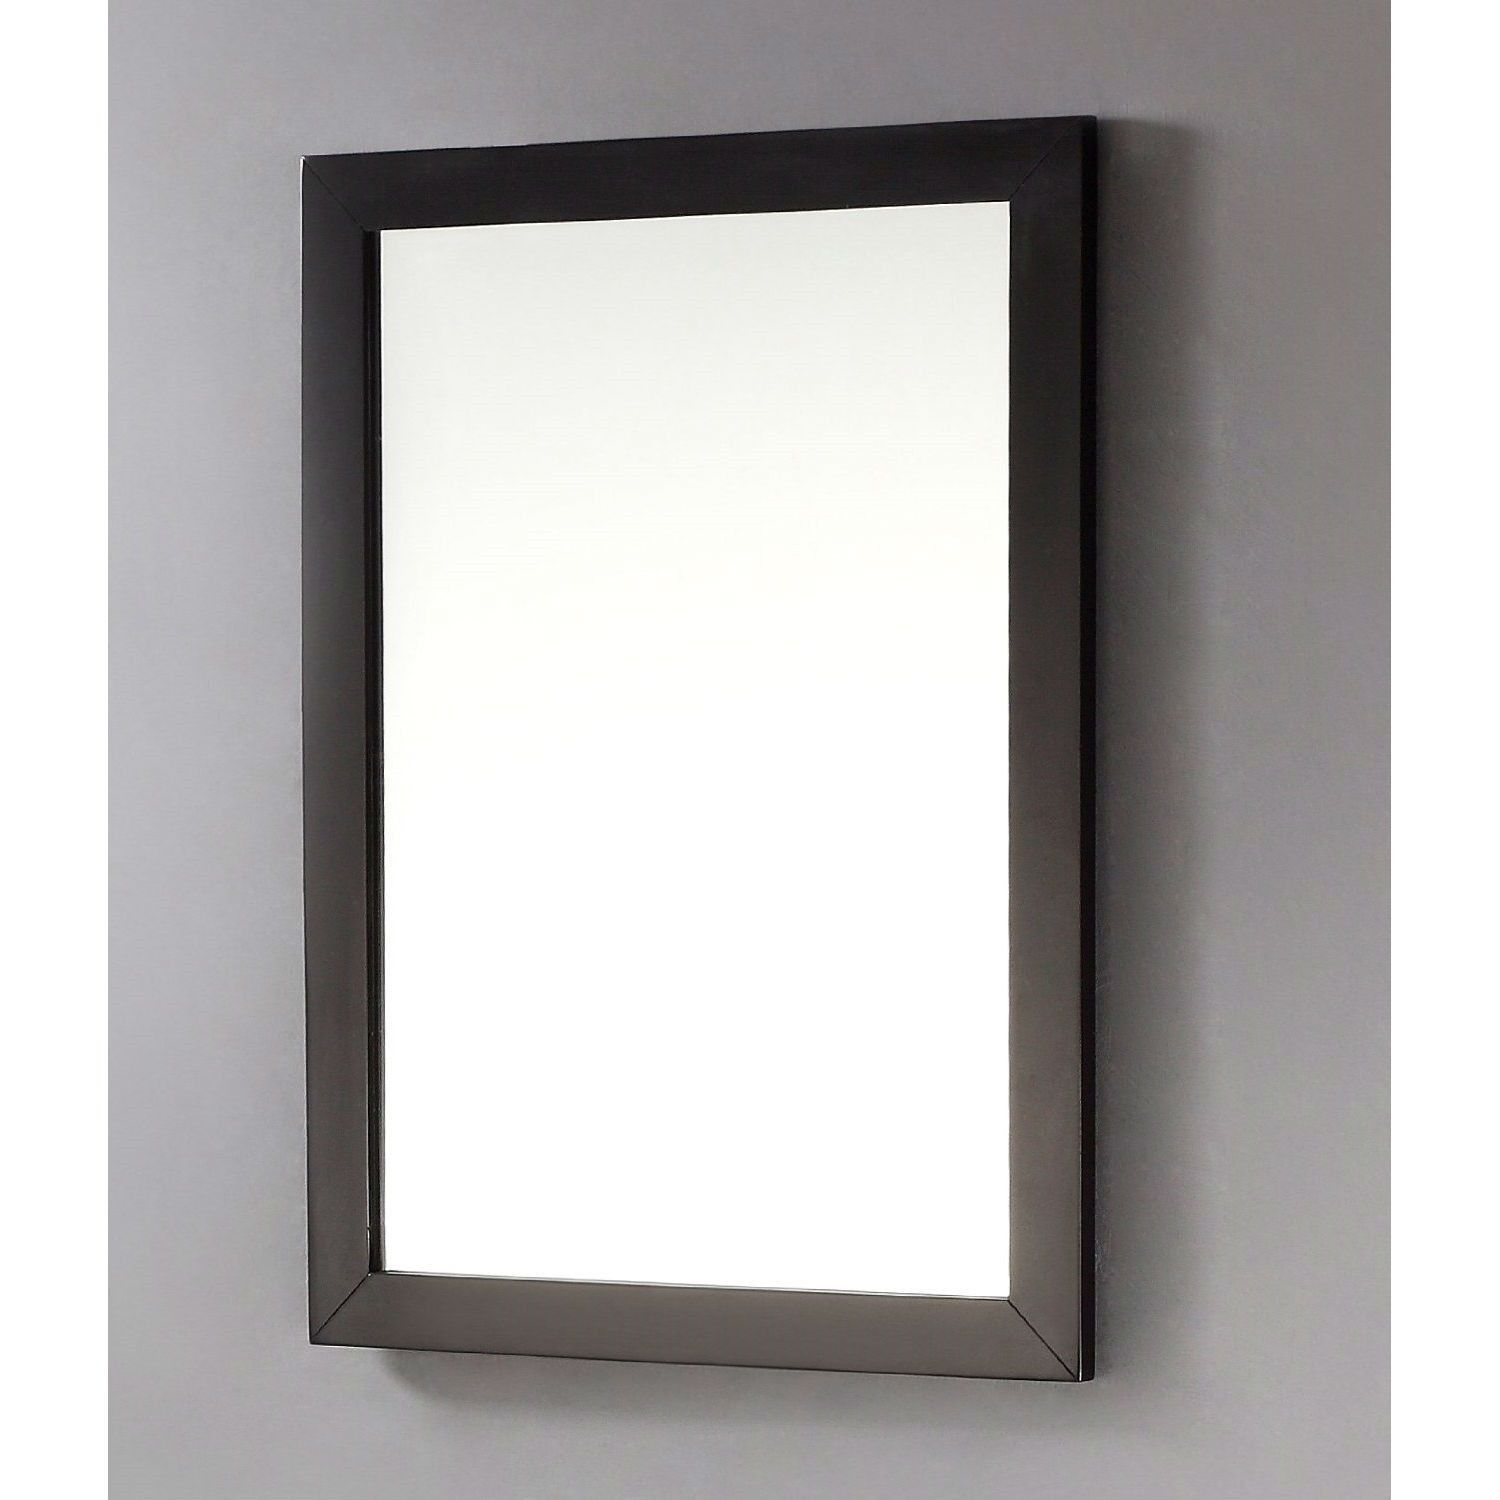 Modern 22 Inch X 30 Bathroom Vanity Wall Mirror With Black Wood Frame